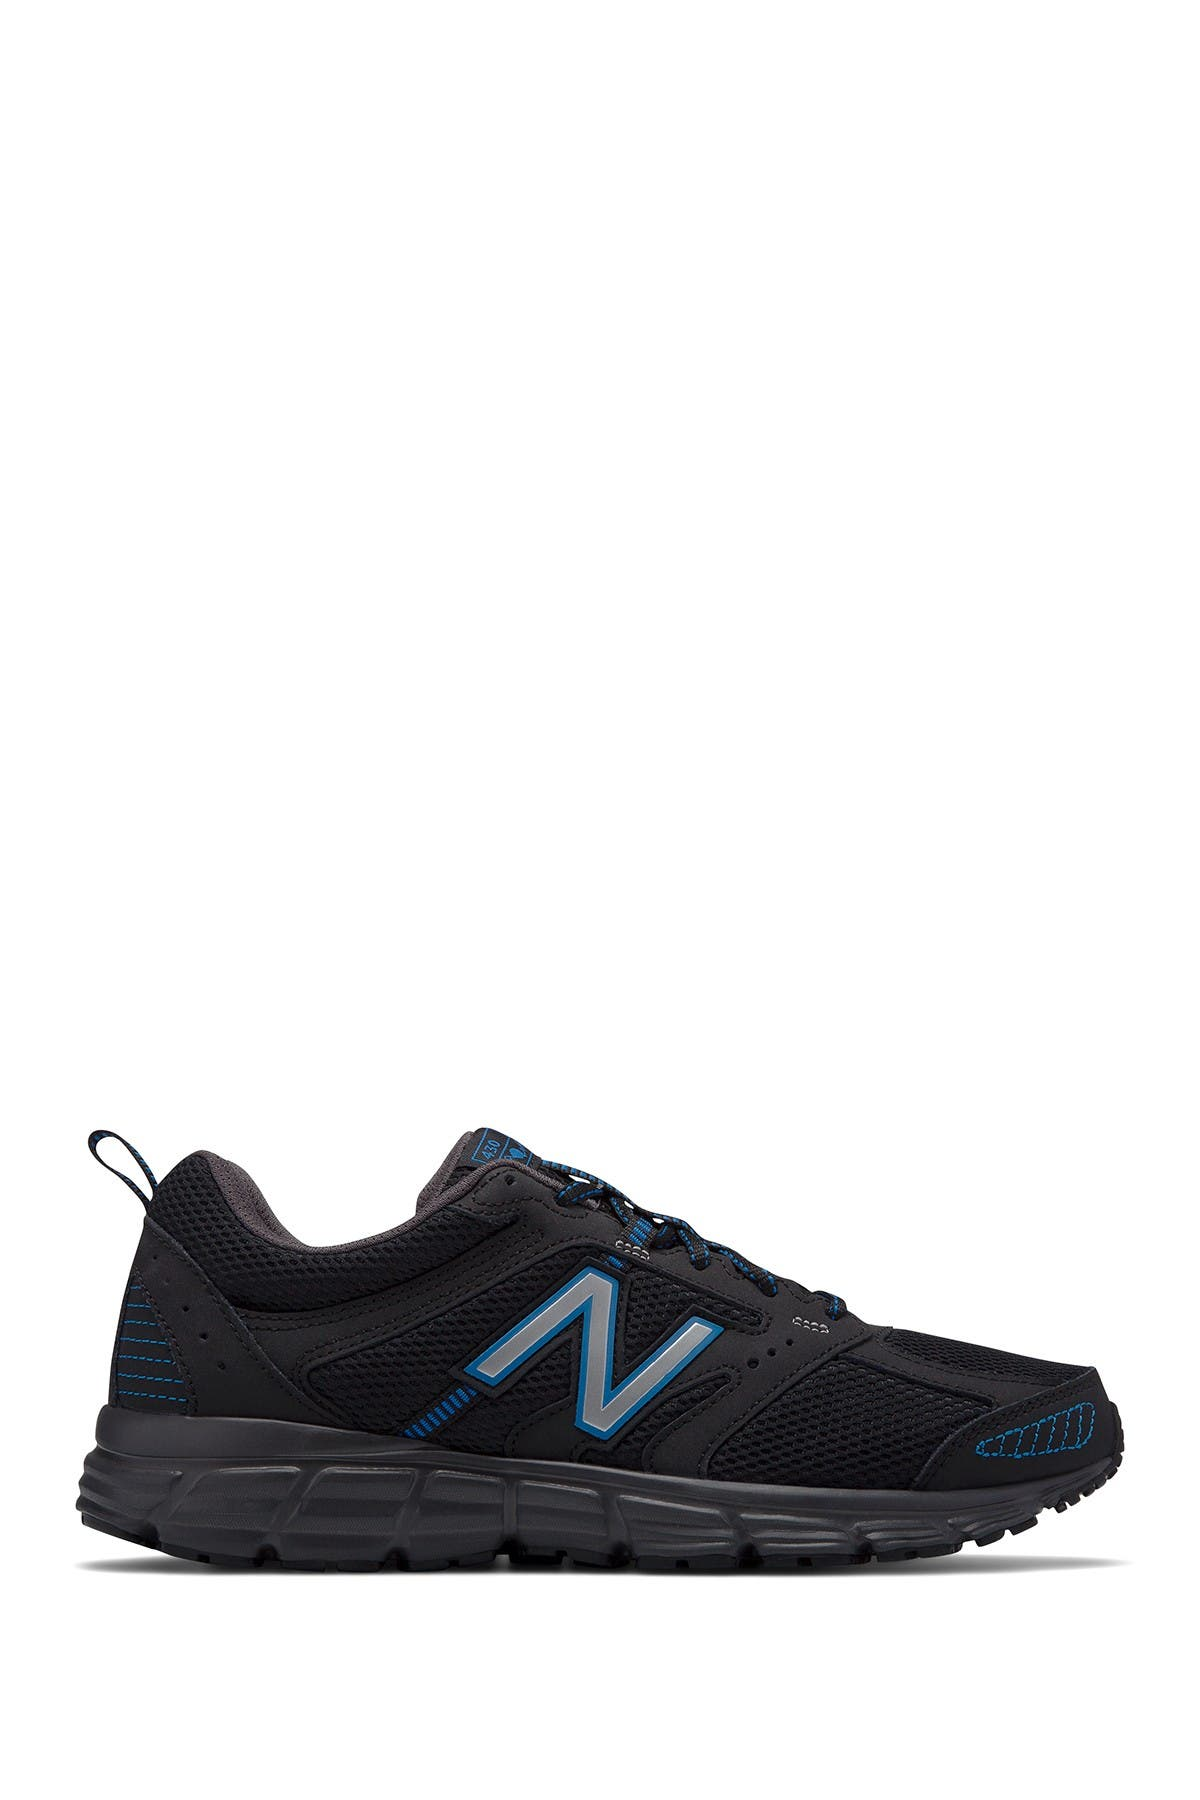 new balance 18 v1 release date